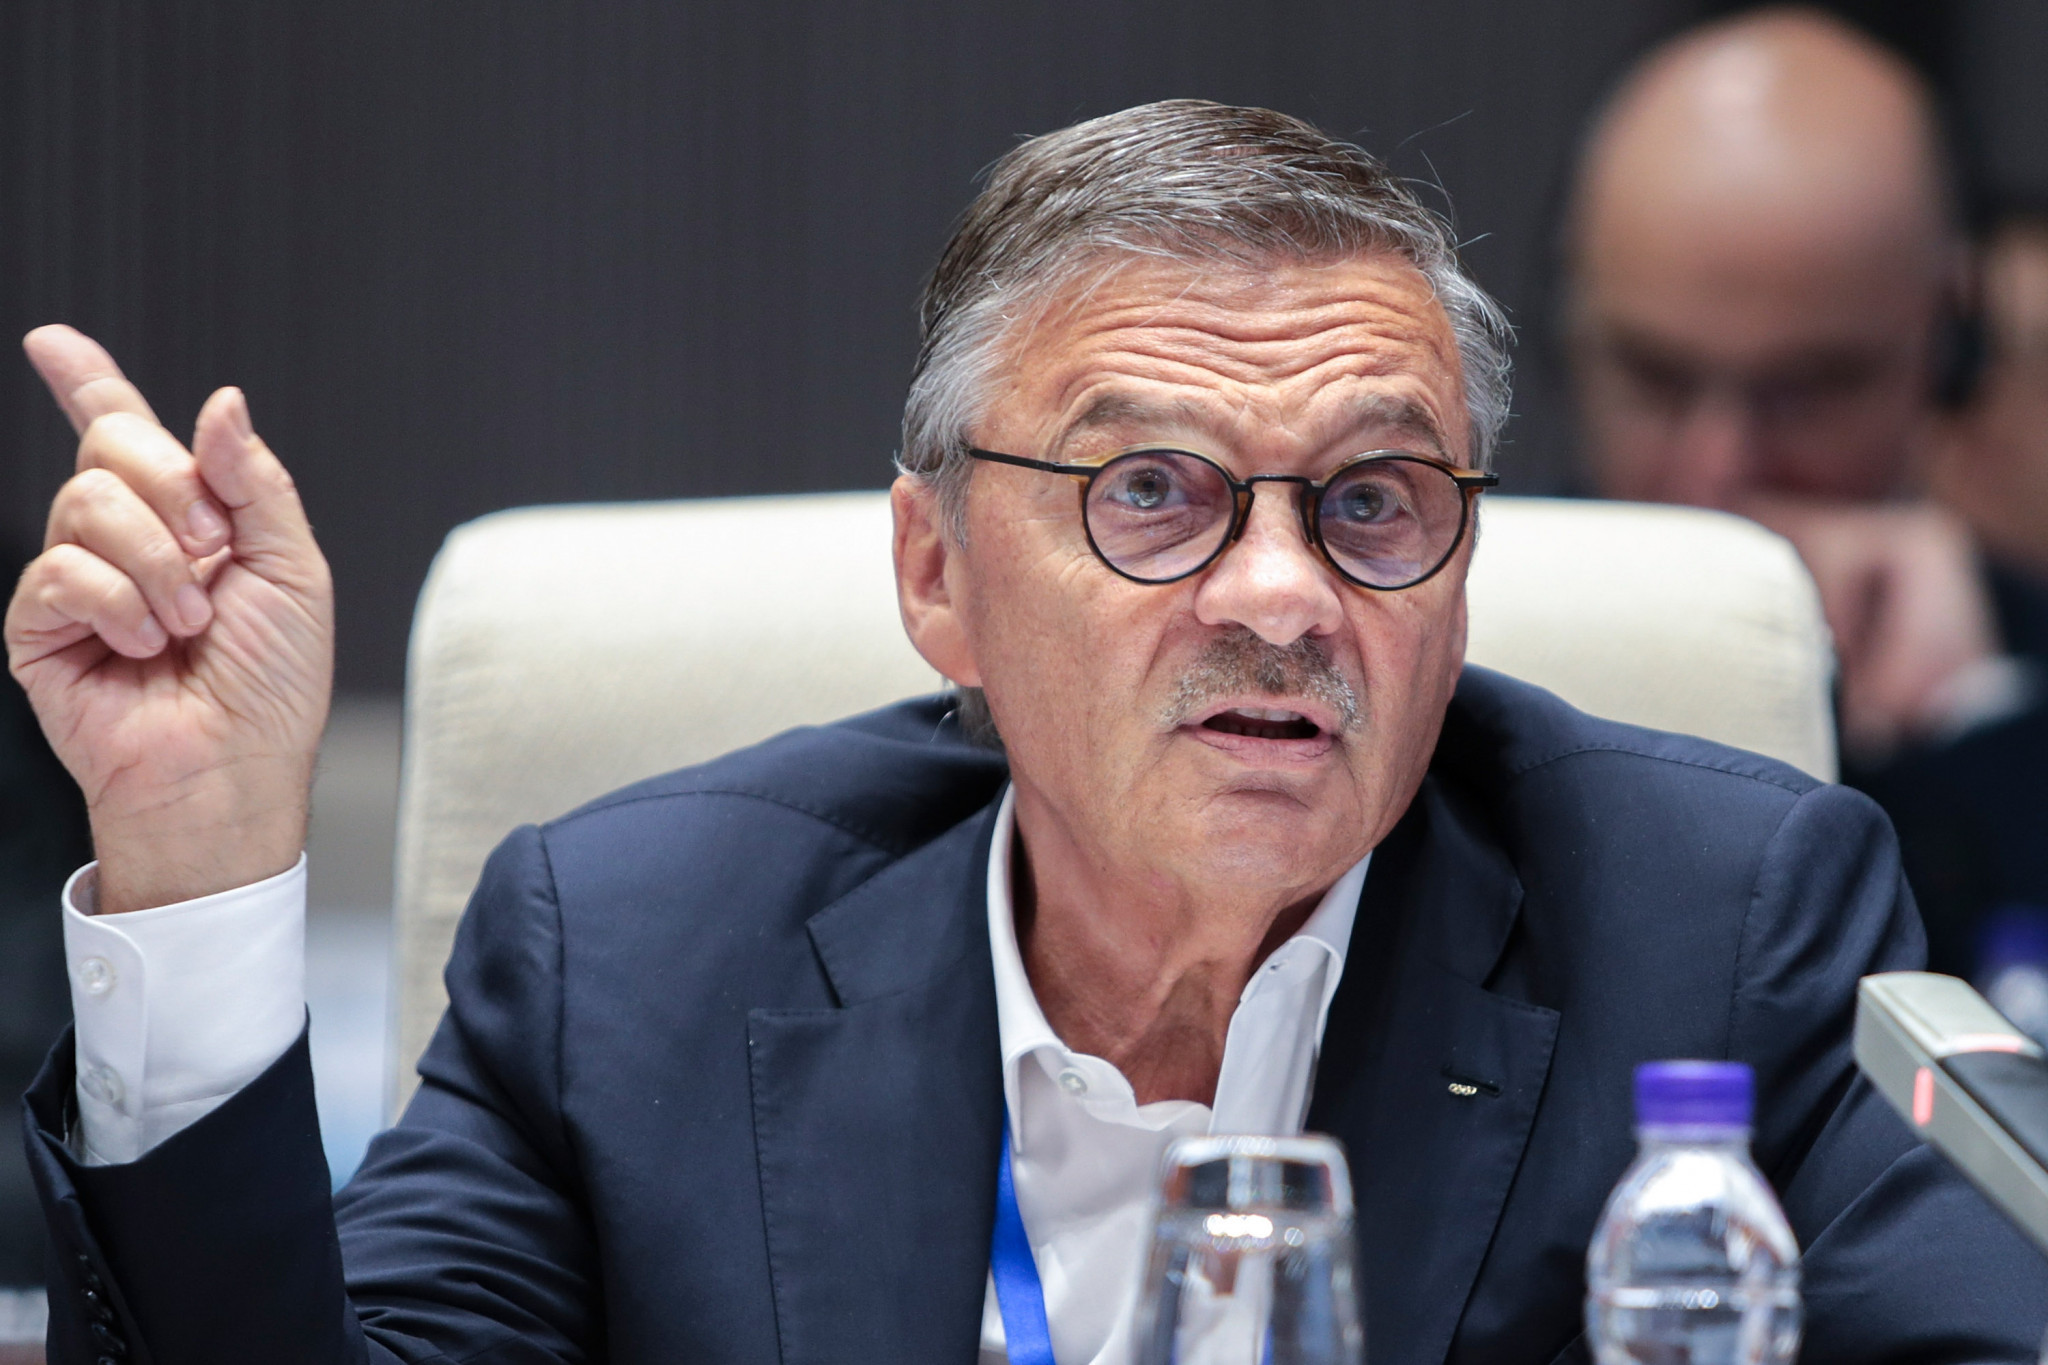 IIHF President says no decision on Men's World Championship location this week